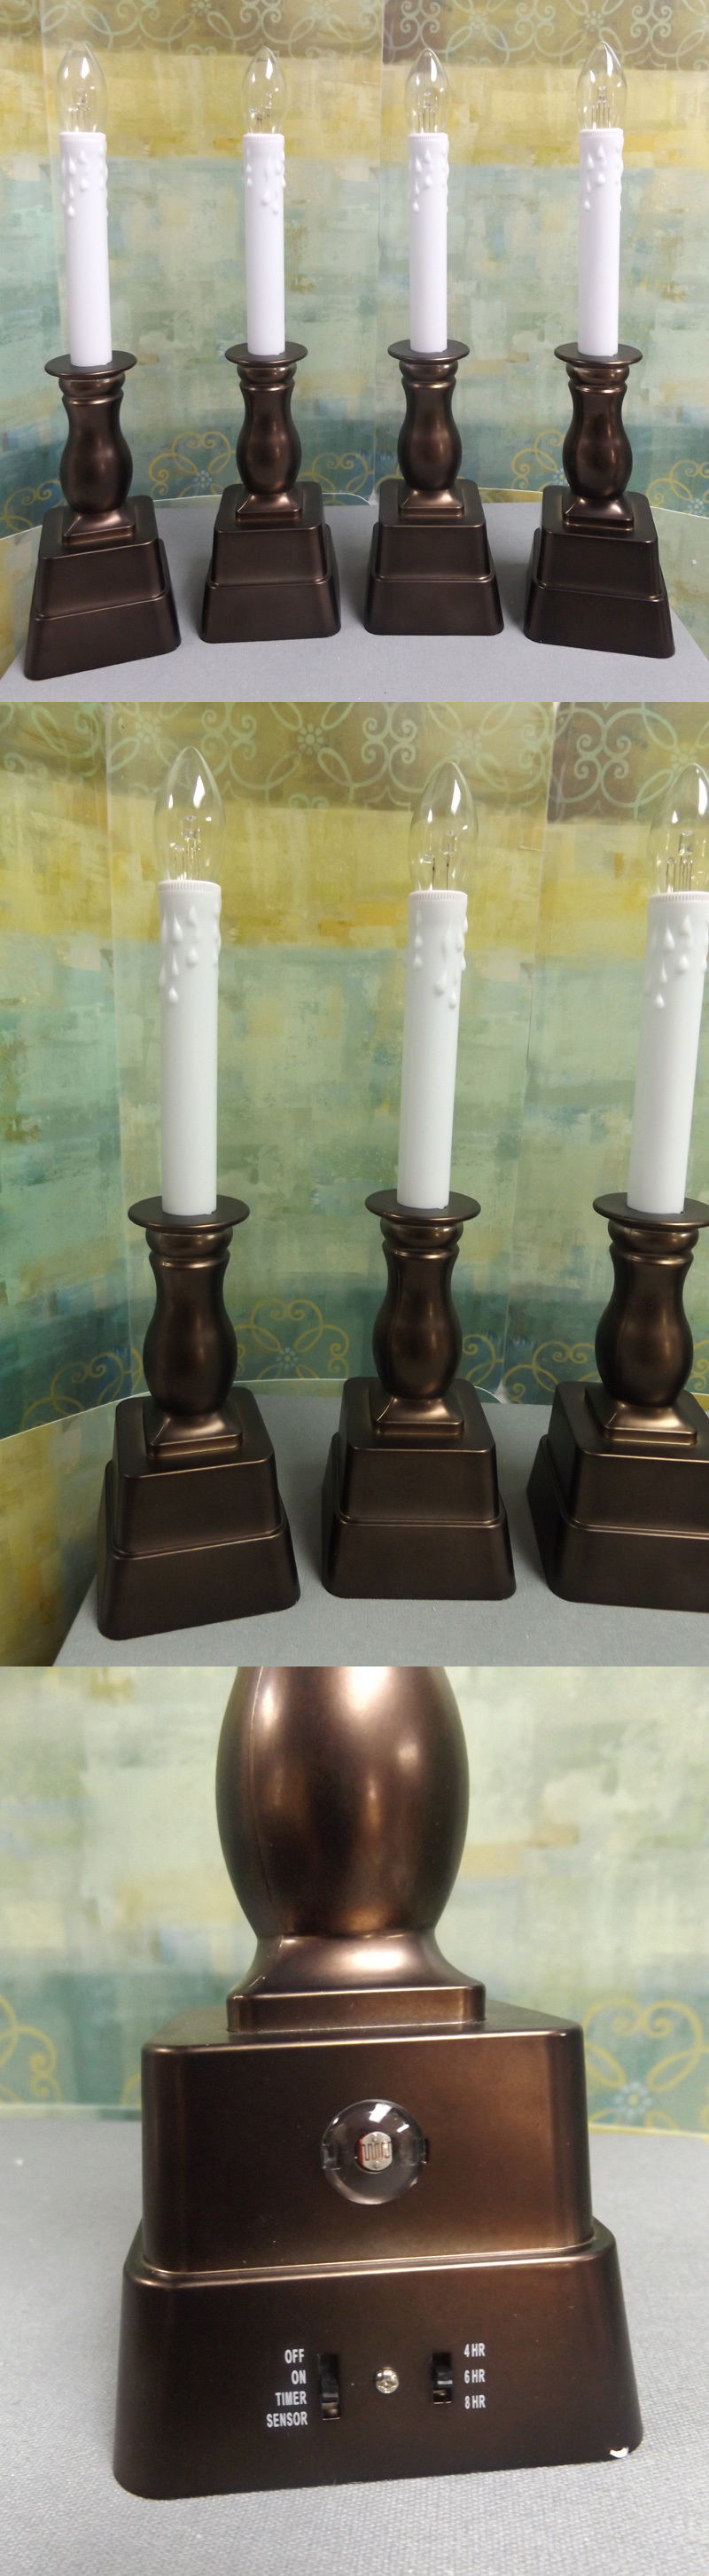 Bethlehem lights window candles with timer - Candles And Candle Accessories 168138 New Bethlehem Lights Set Of 4 Battery Op Window